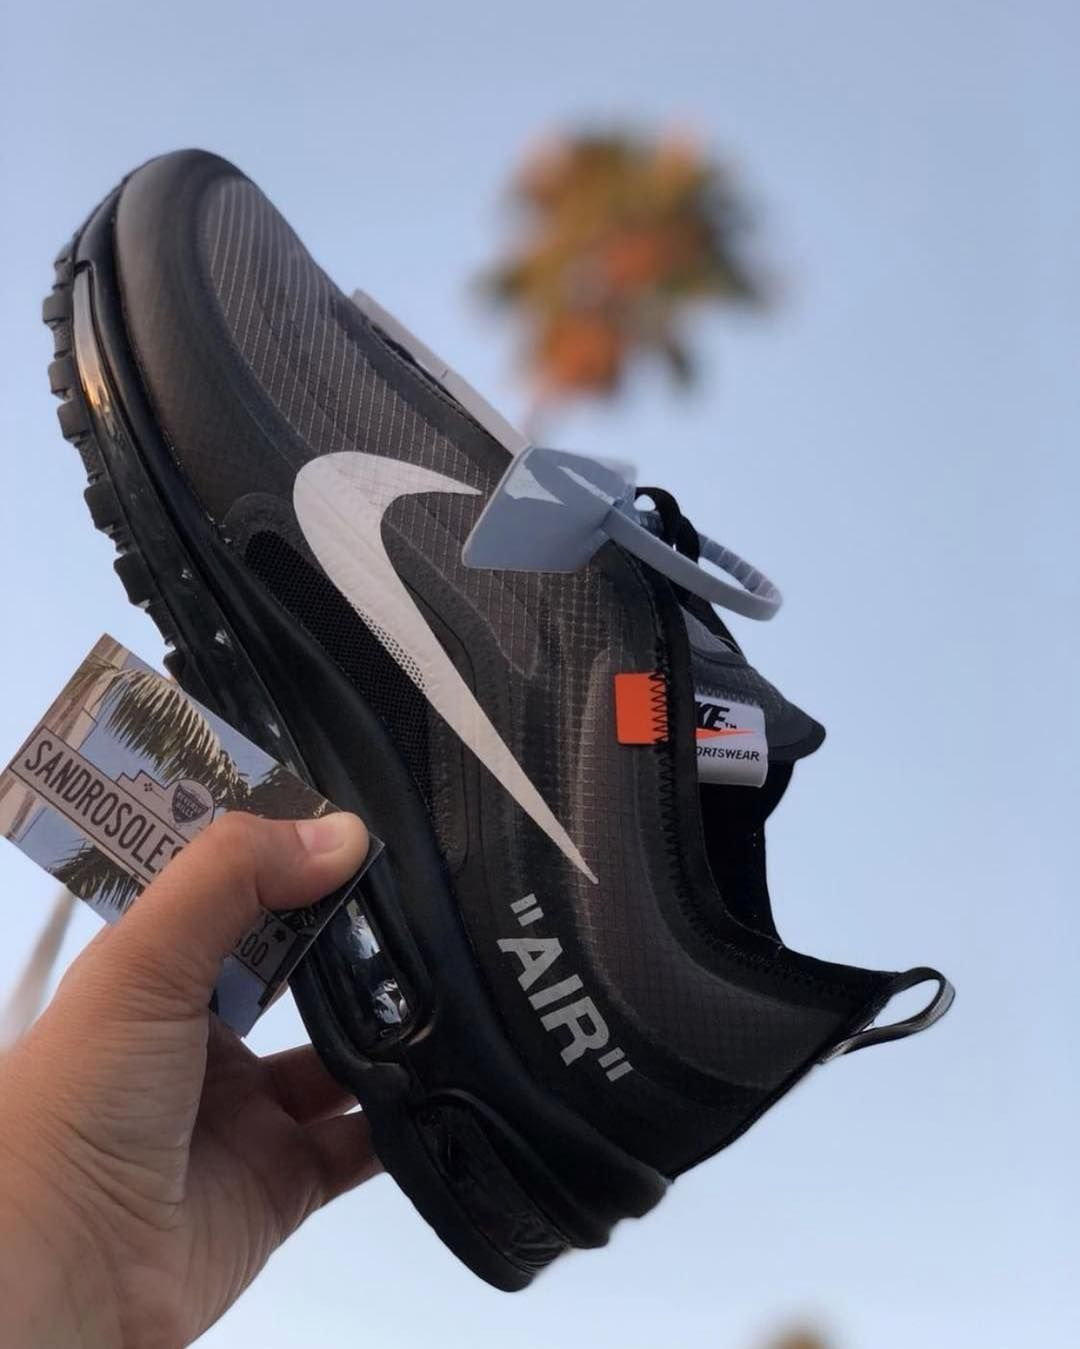 Contact Ig Sandrosoles Unreleased Off White Air Max 97 Black Size 10 5 No Box 100000 Authentic And 2 Months Early 1180 Shipped Air Max 97 Black Off White